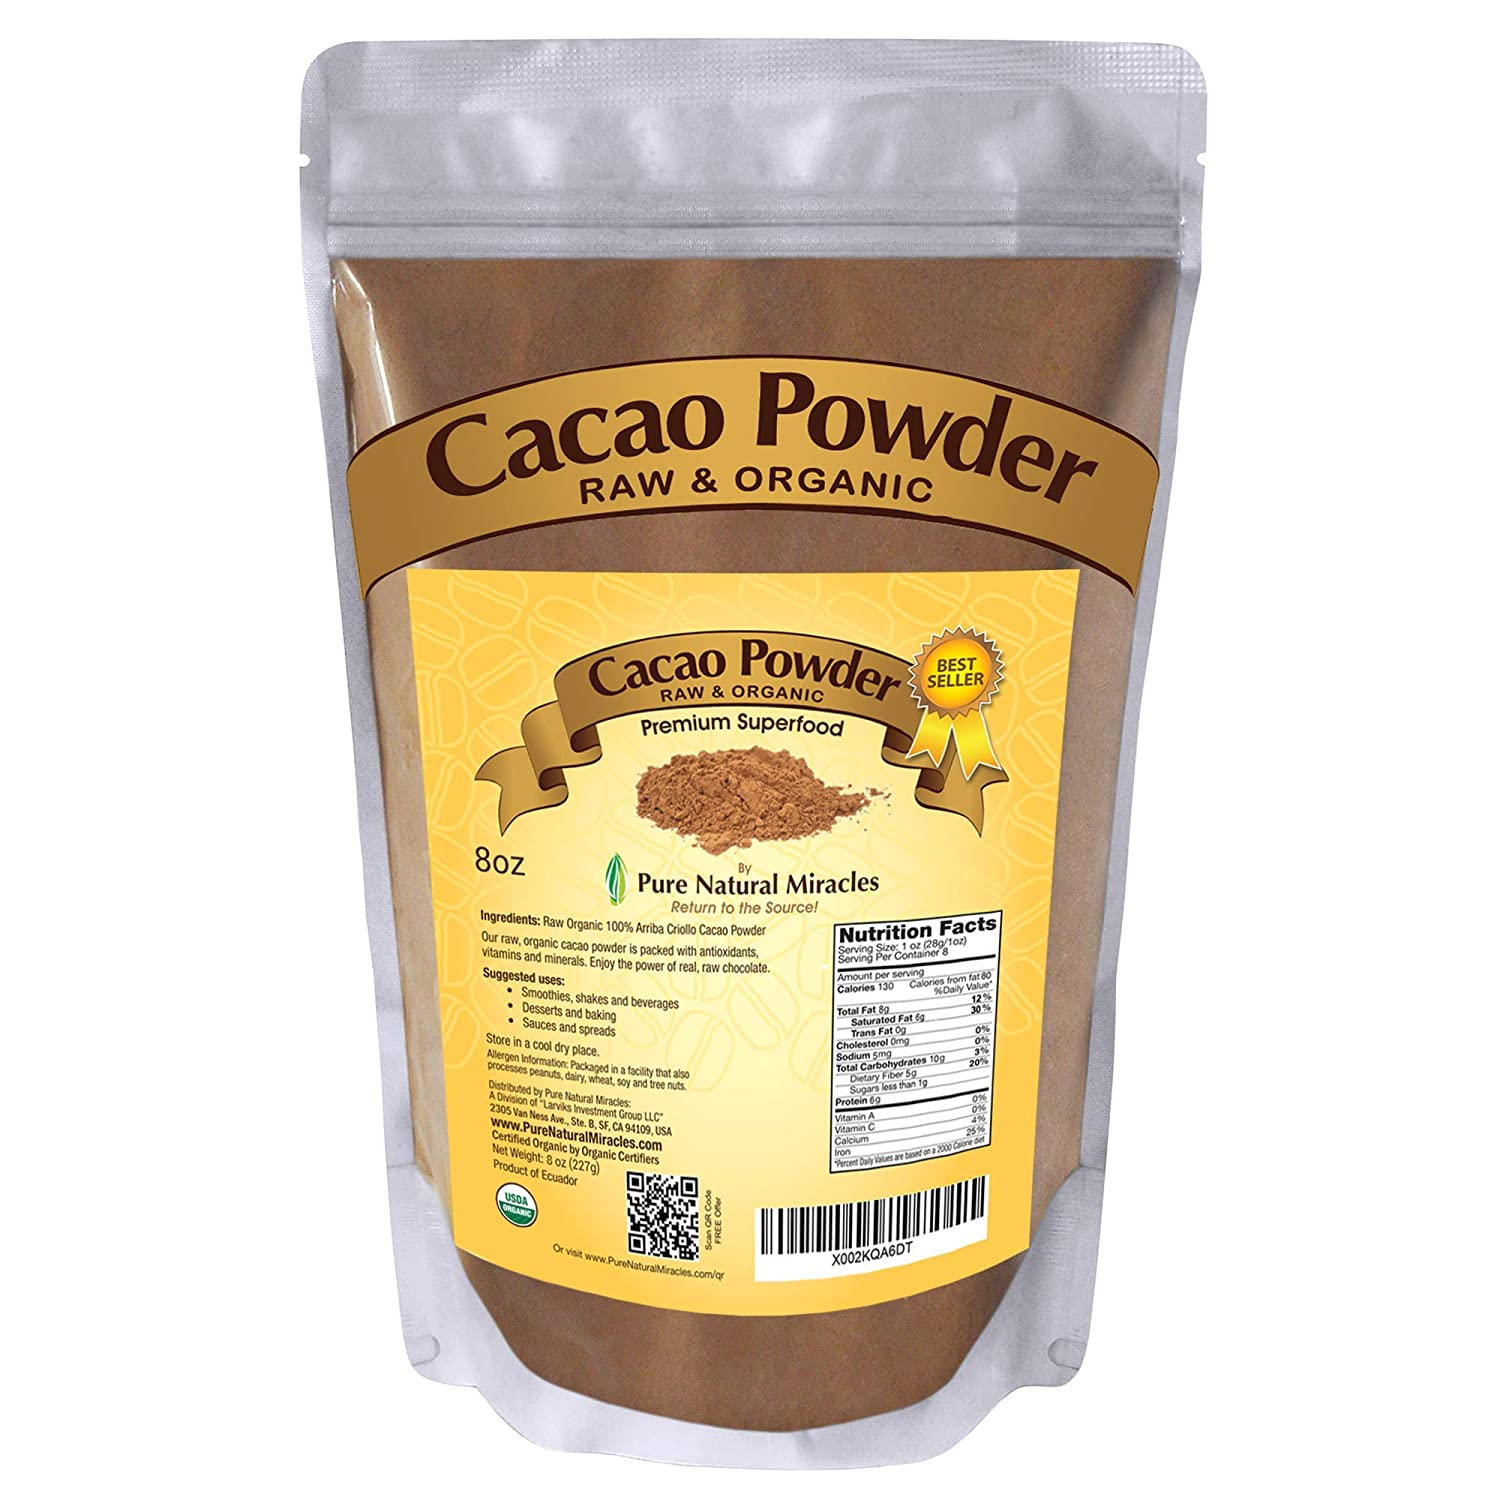 PURE NATURAL MIRACLES Organic Cacao Powder Unsweetened Raw Cocoa 8 oz